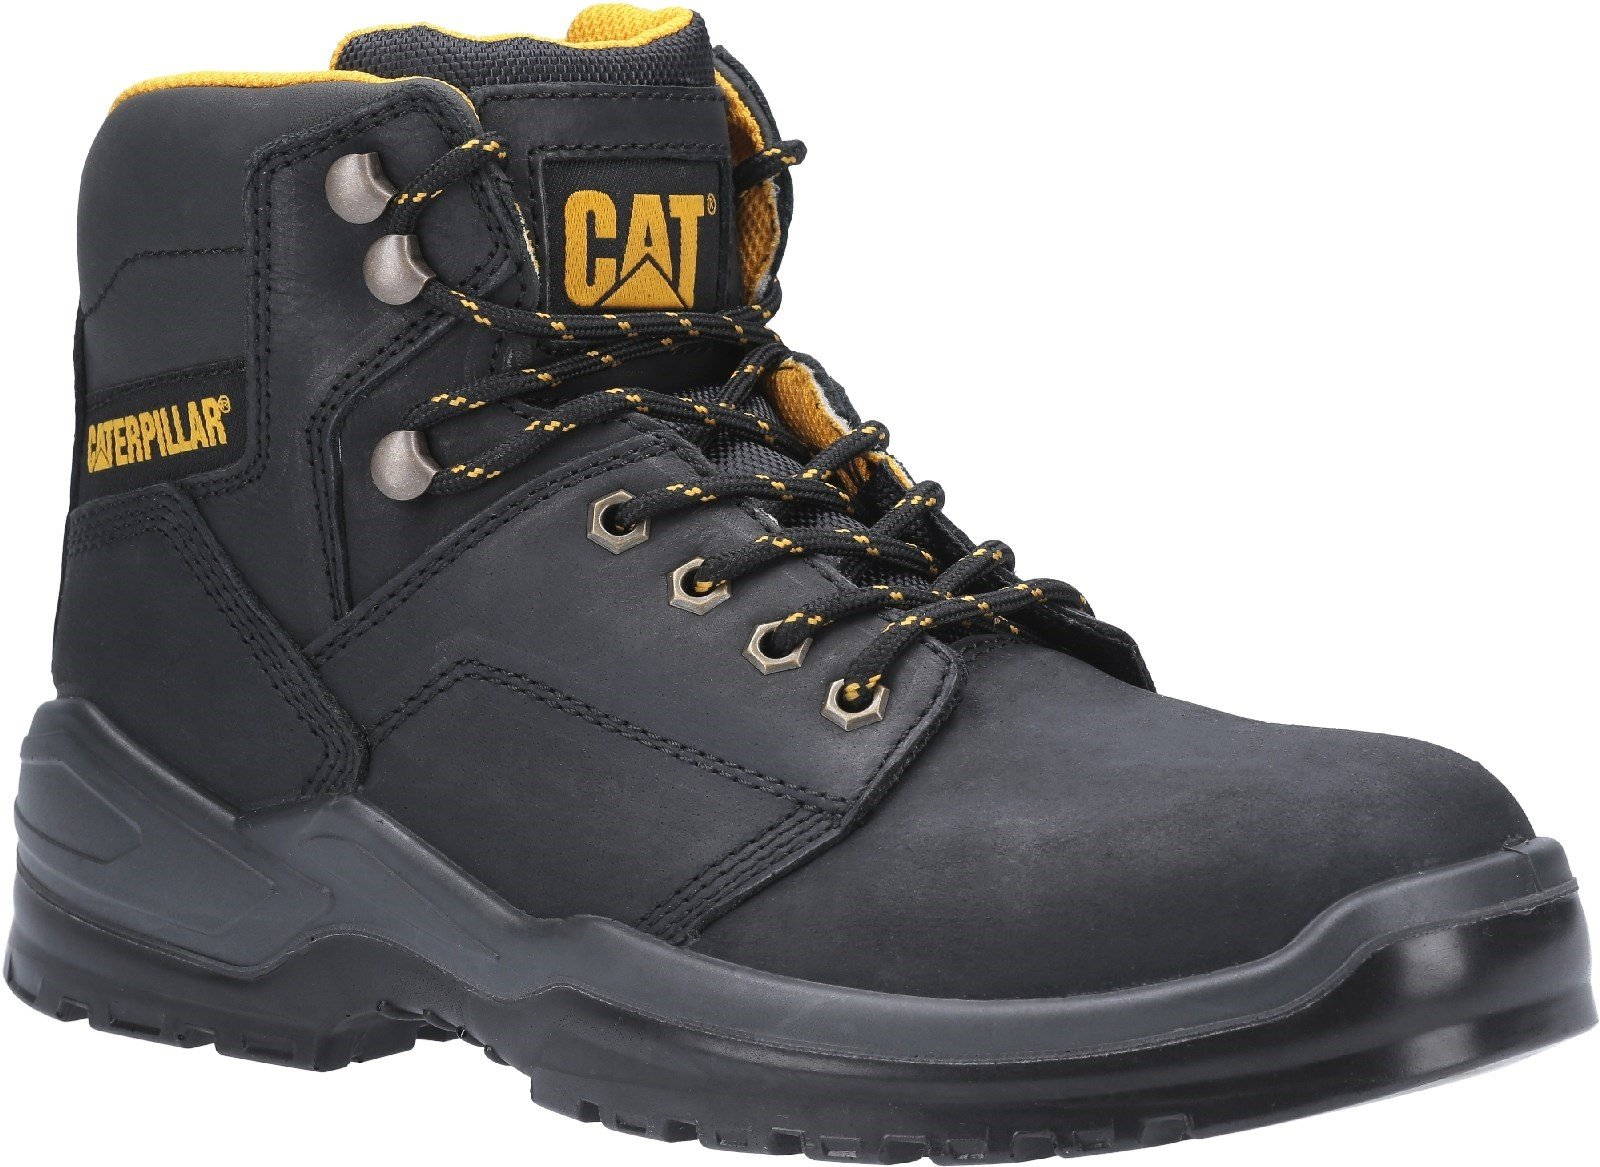 Caterpillar Men's Striver Lace Up Injected Safety Boot Various Colours 30702 - Black 6